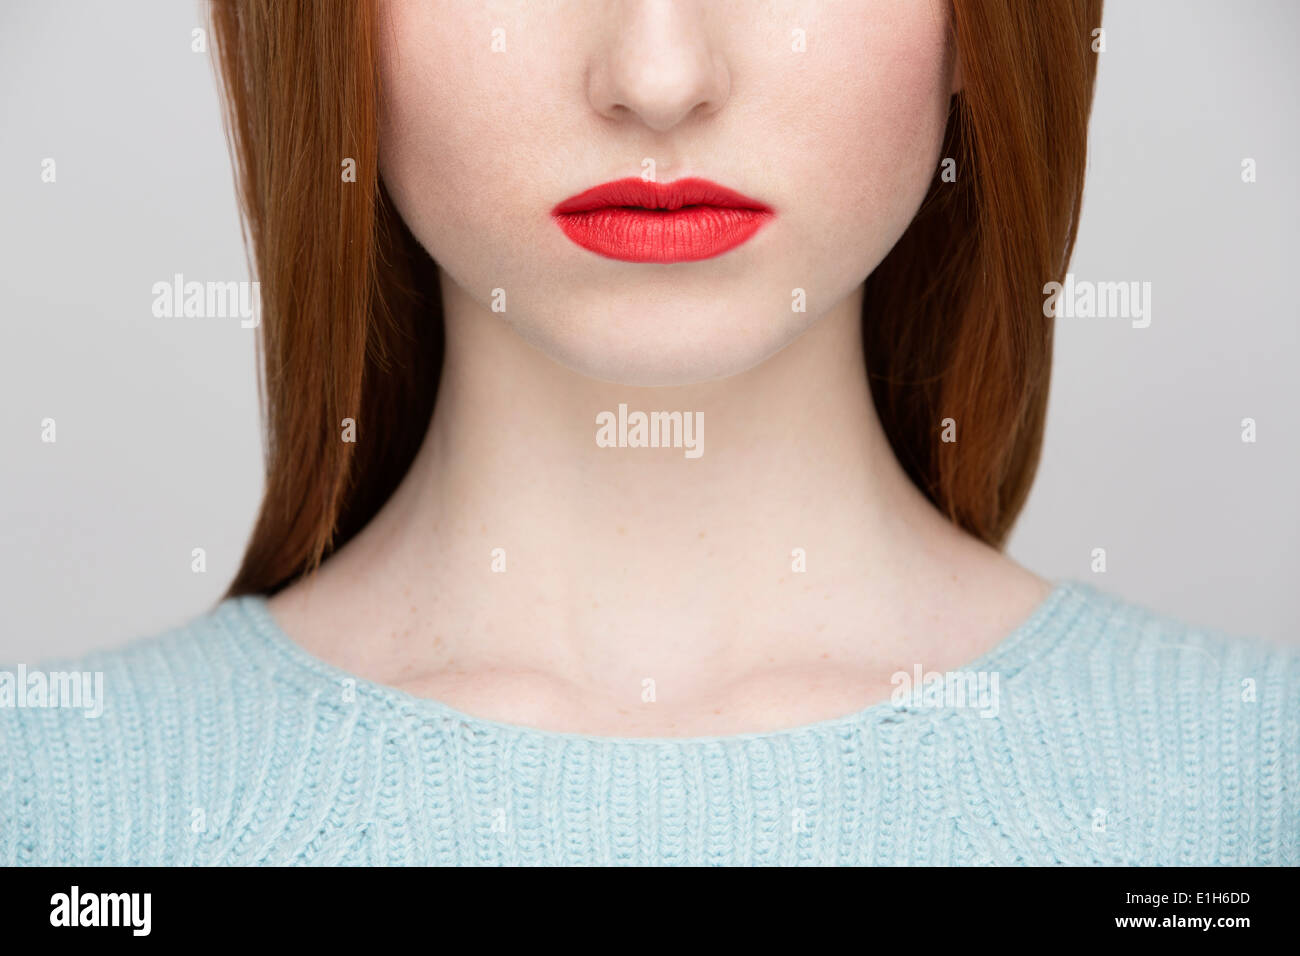 Portrait of young woman's lips Photo Stock